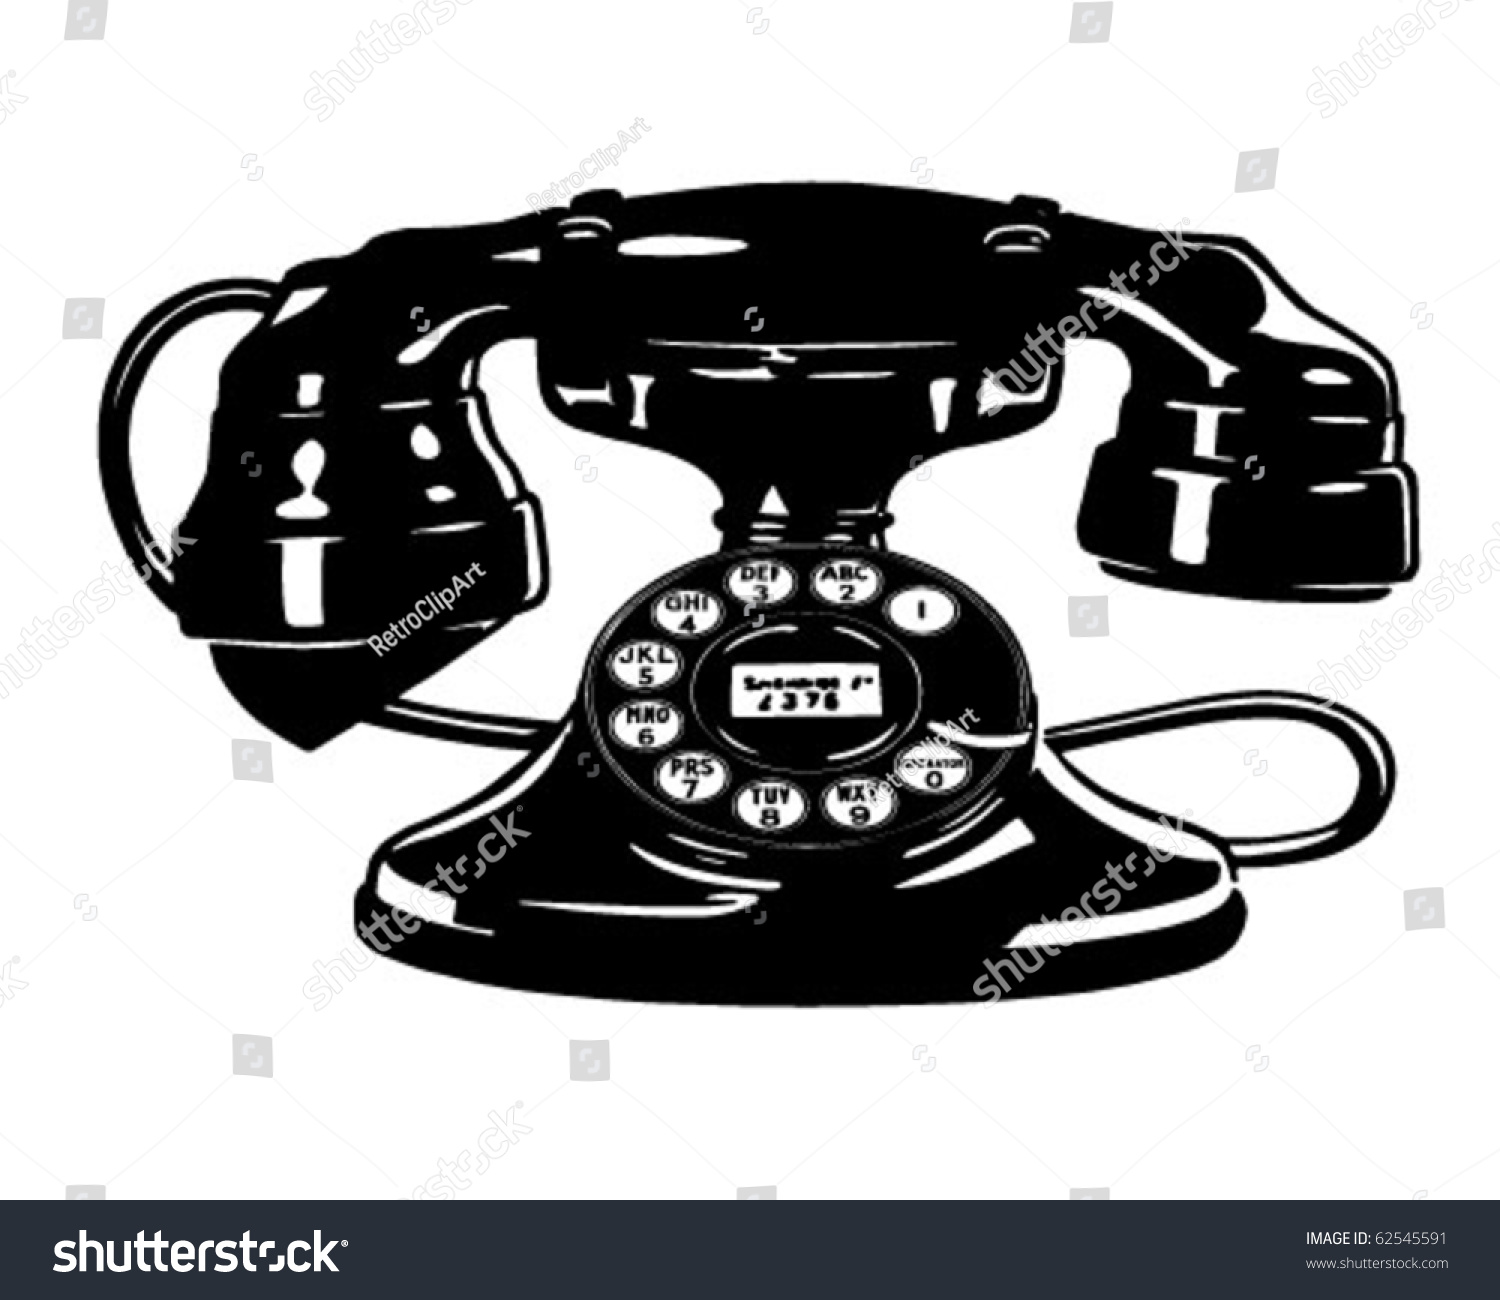 vintage telephone clipart - photo #5